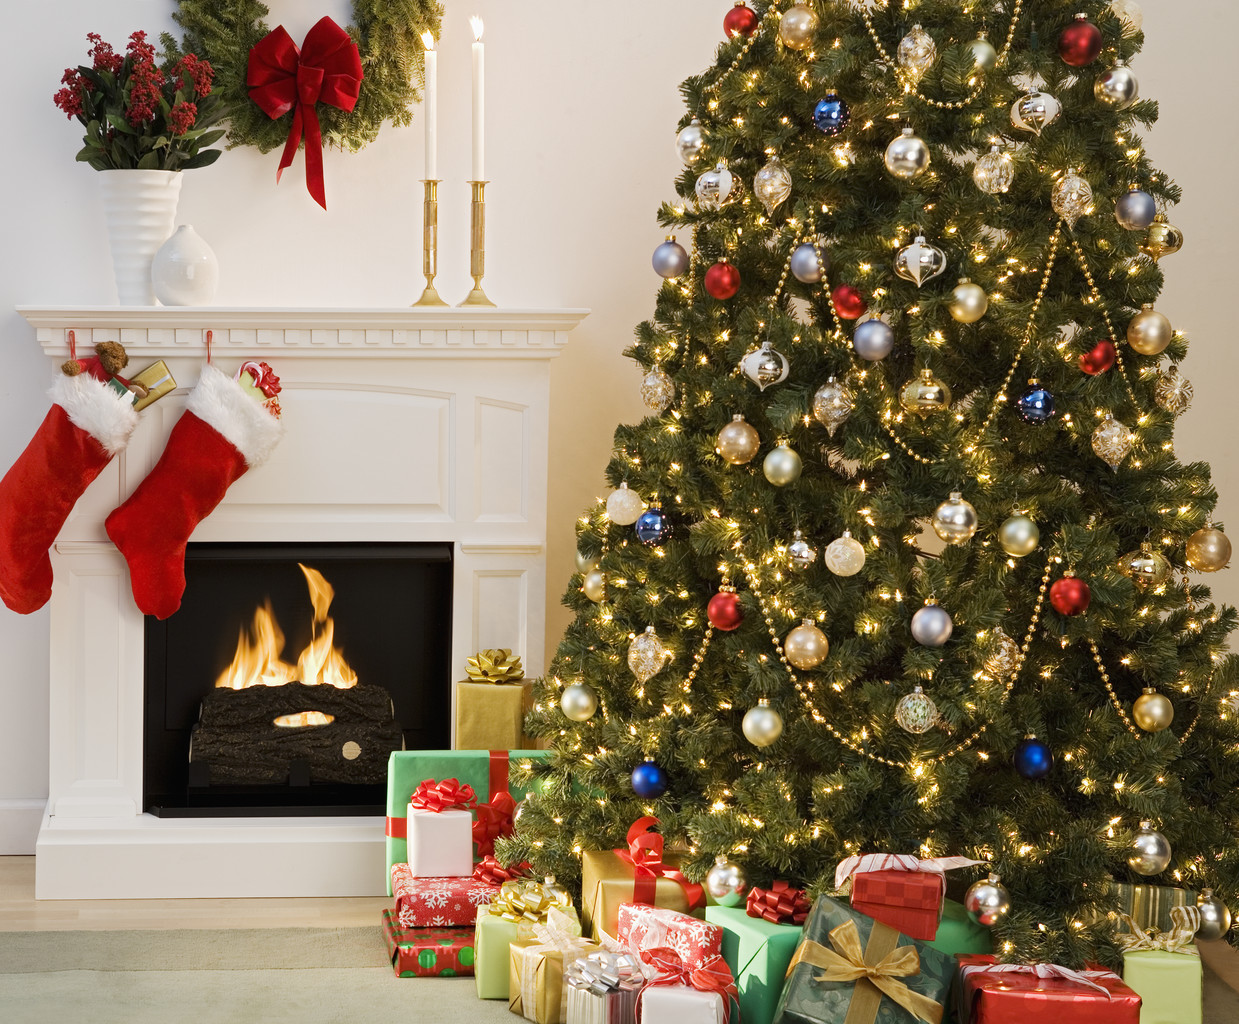 christmas eve traditions that makes lovely memories